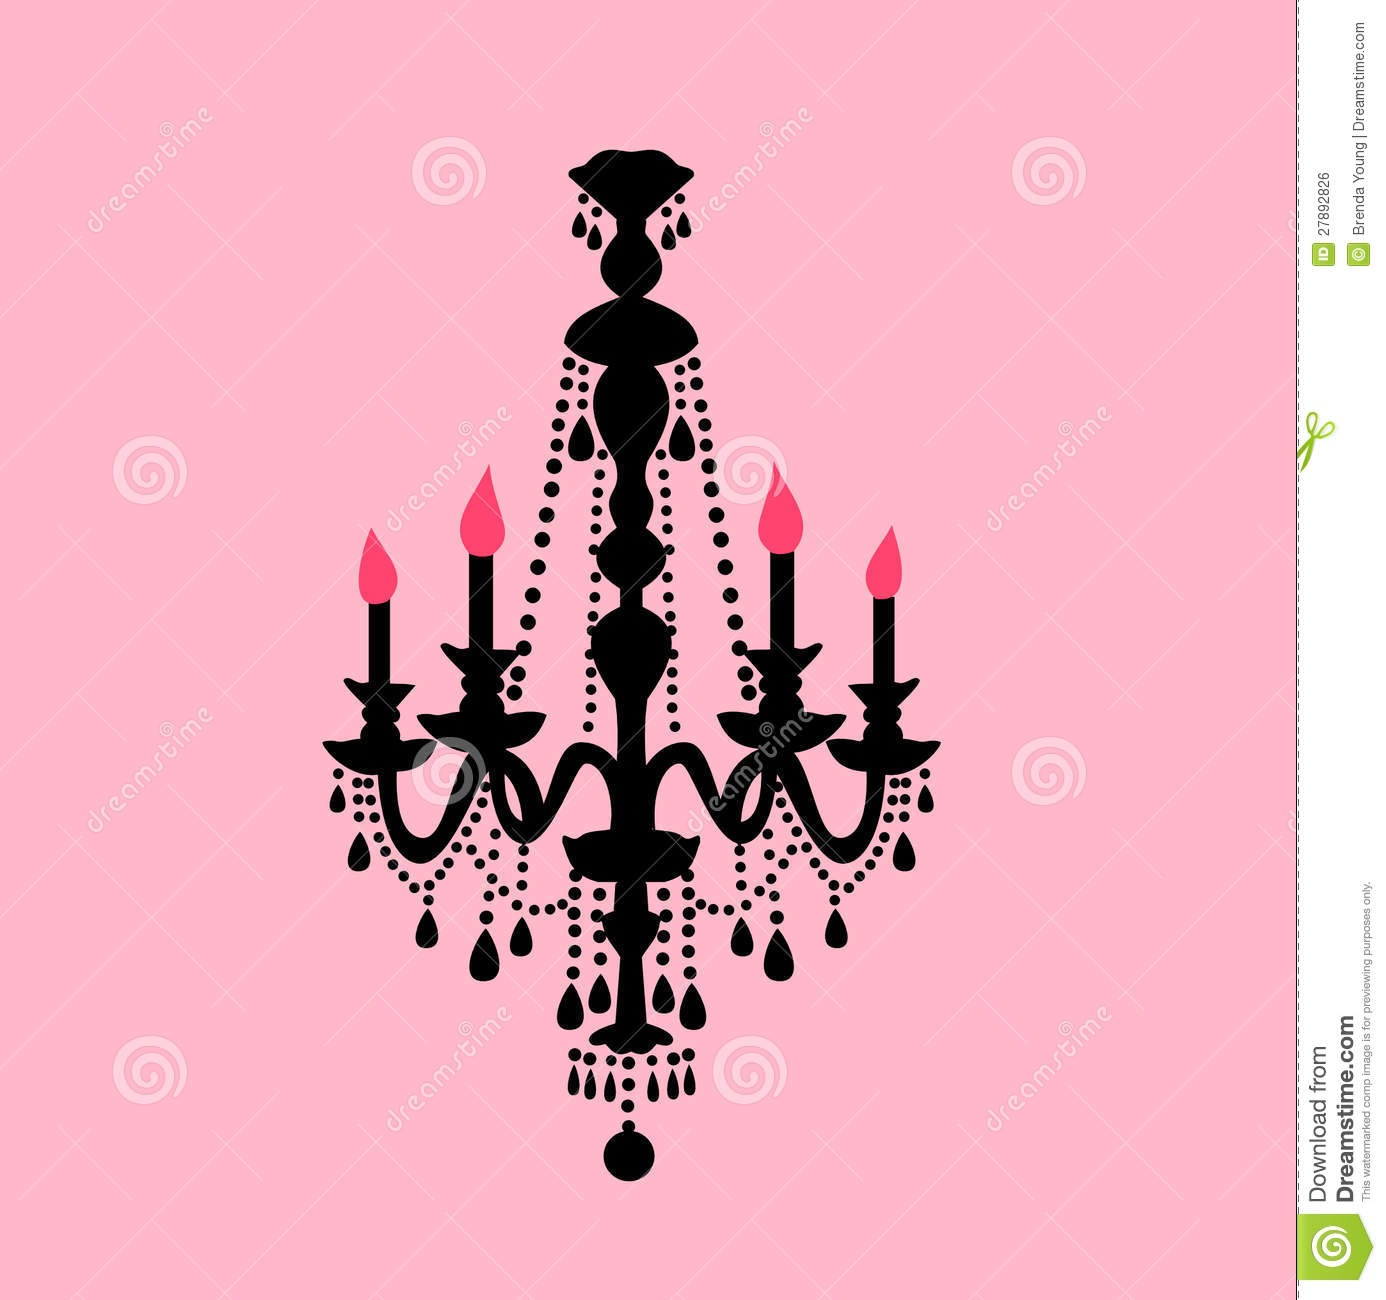 Chandelier Illustration Of A Black And Pink Design Royalty Free Stock Image